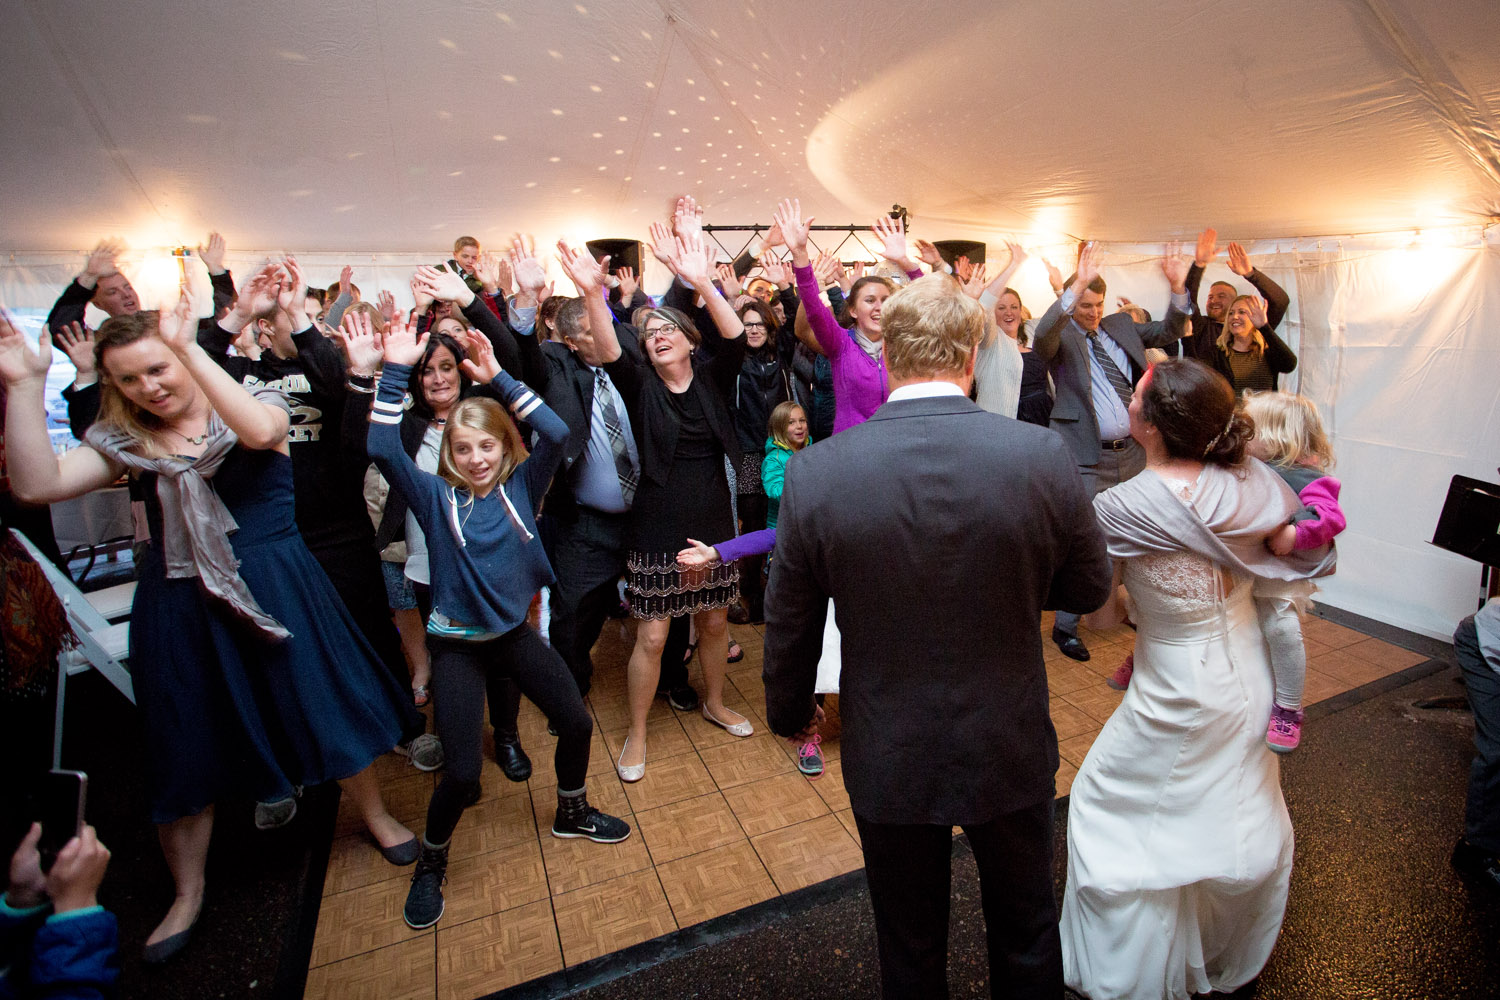 Abby and John's wedding party got most of their guests to kick off the dance portion of the evening with a surprise flash mob to Justin Timberlake's can't stop the feelin'